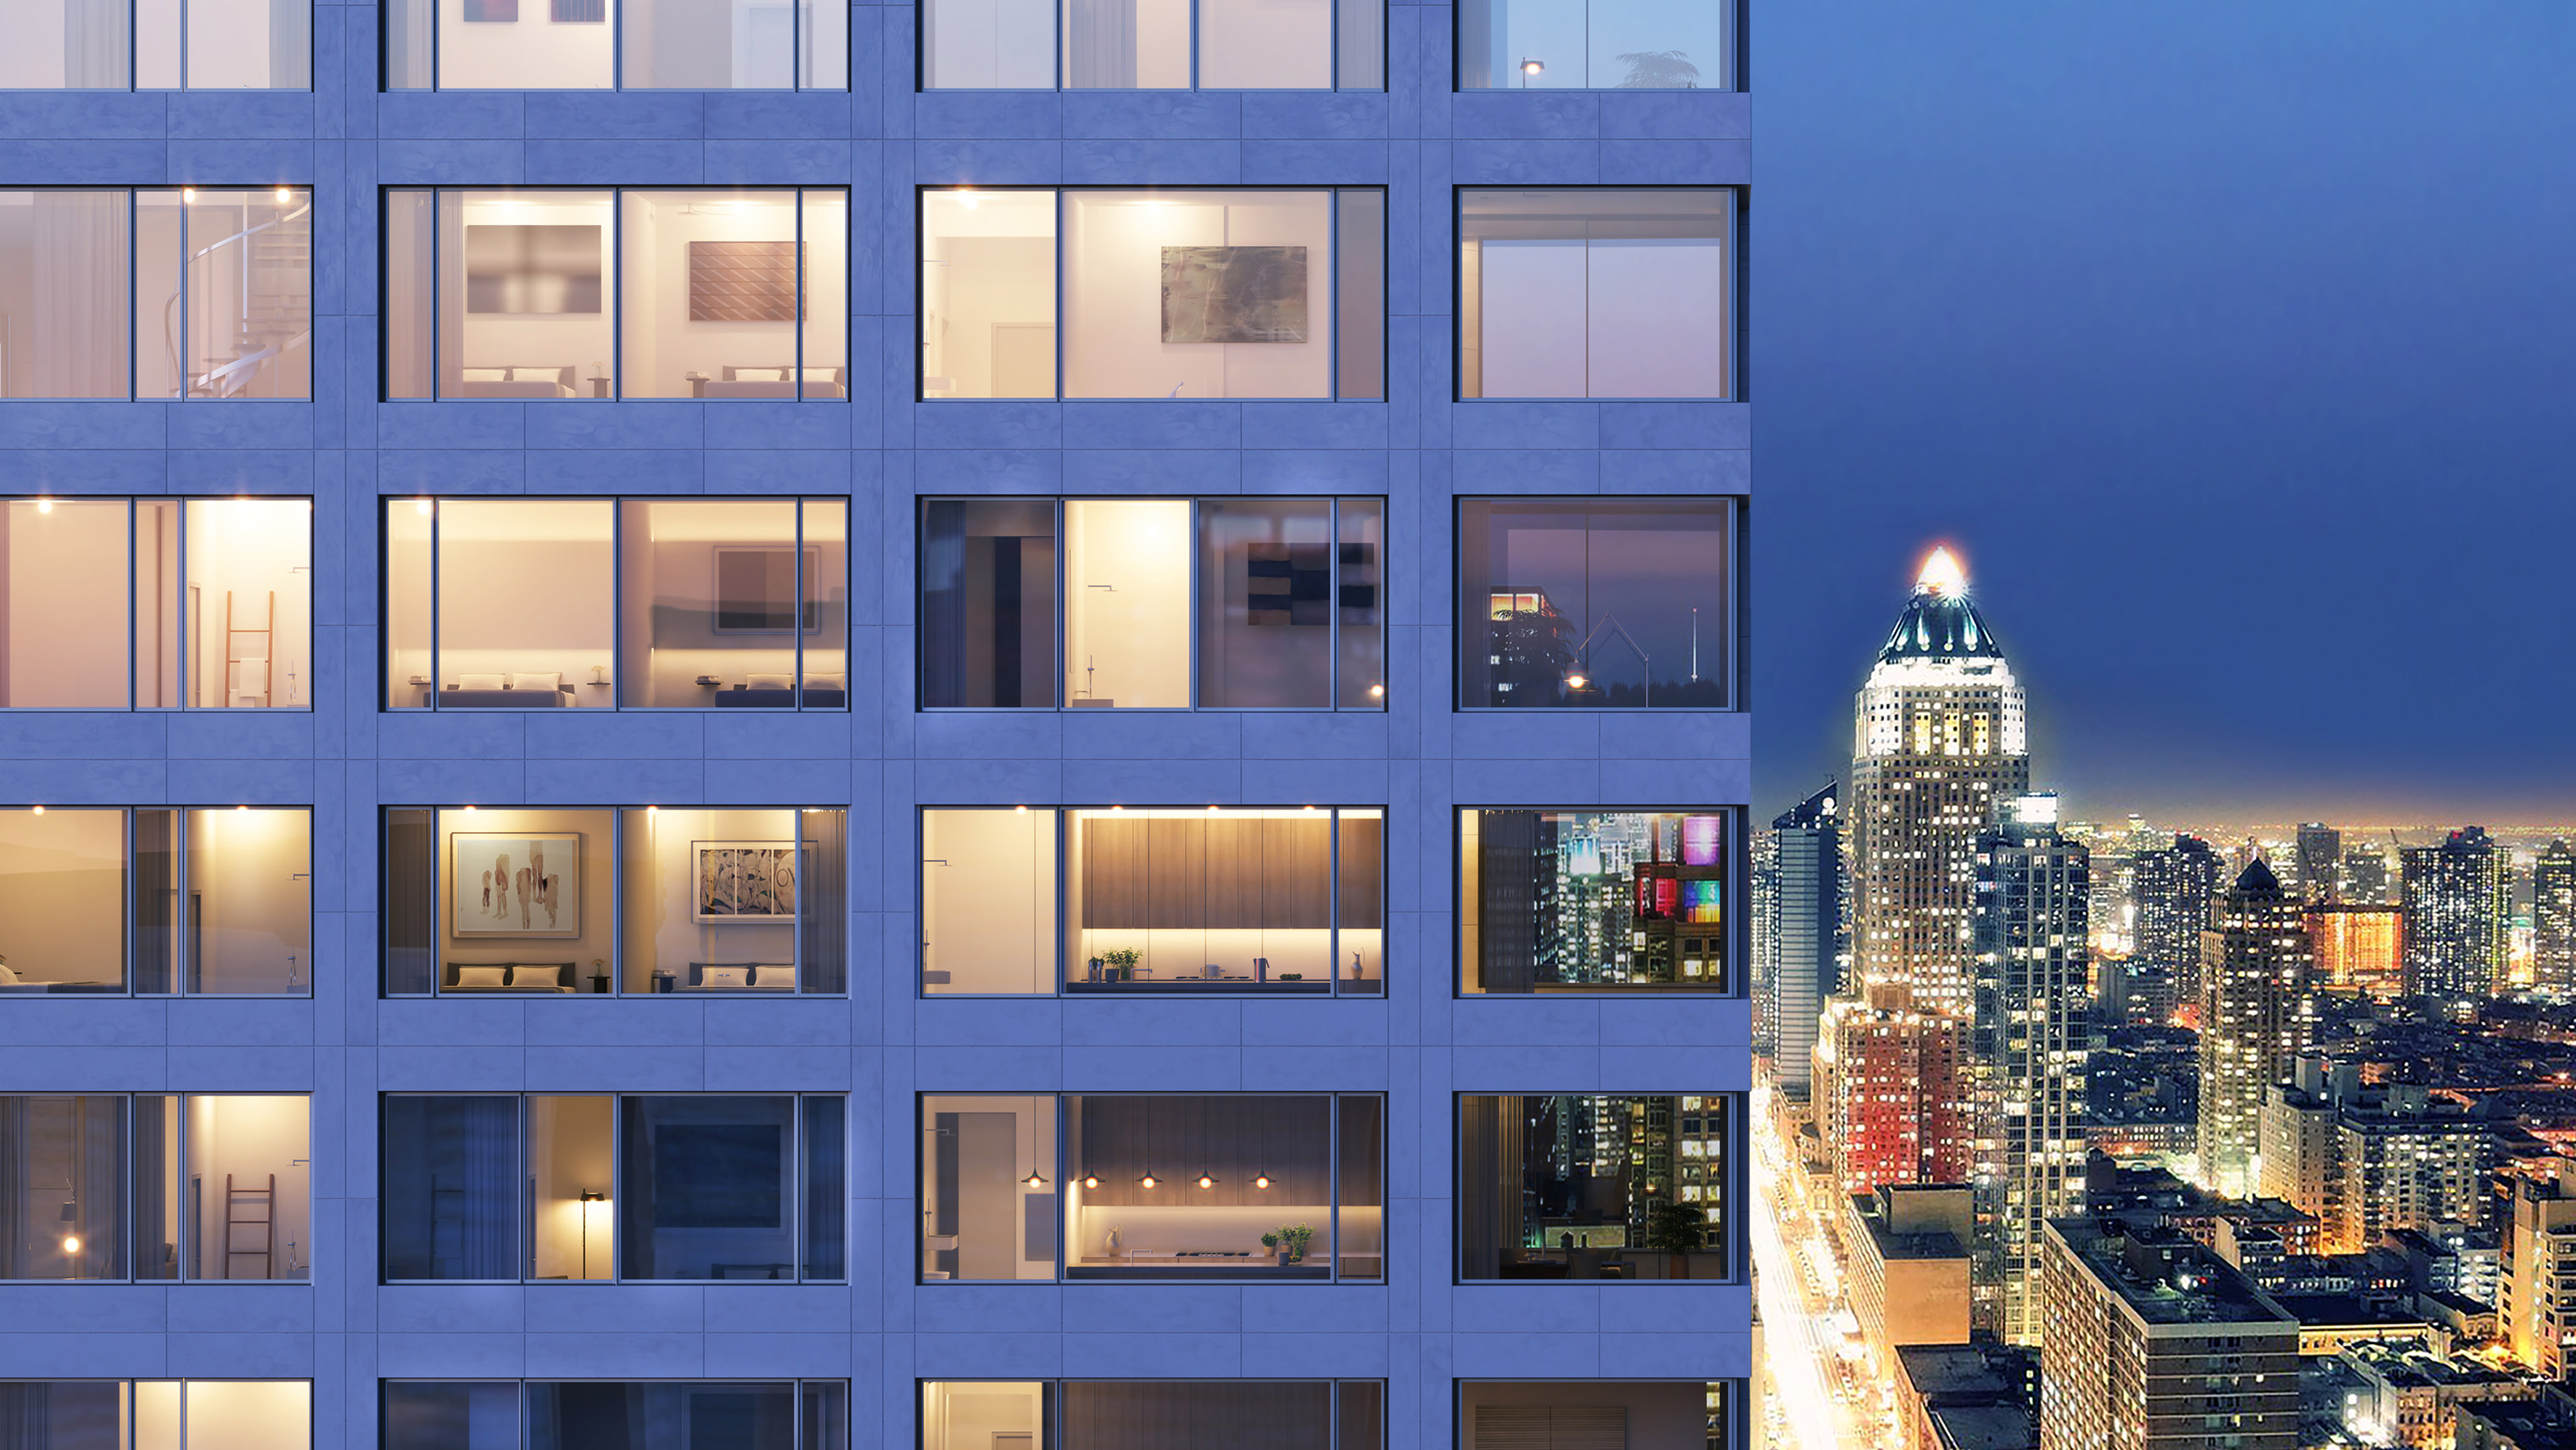 611 West 56 St city view